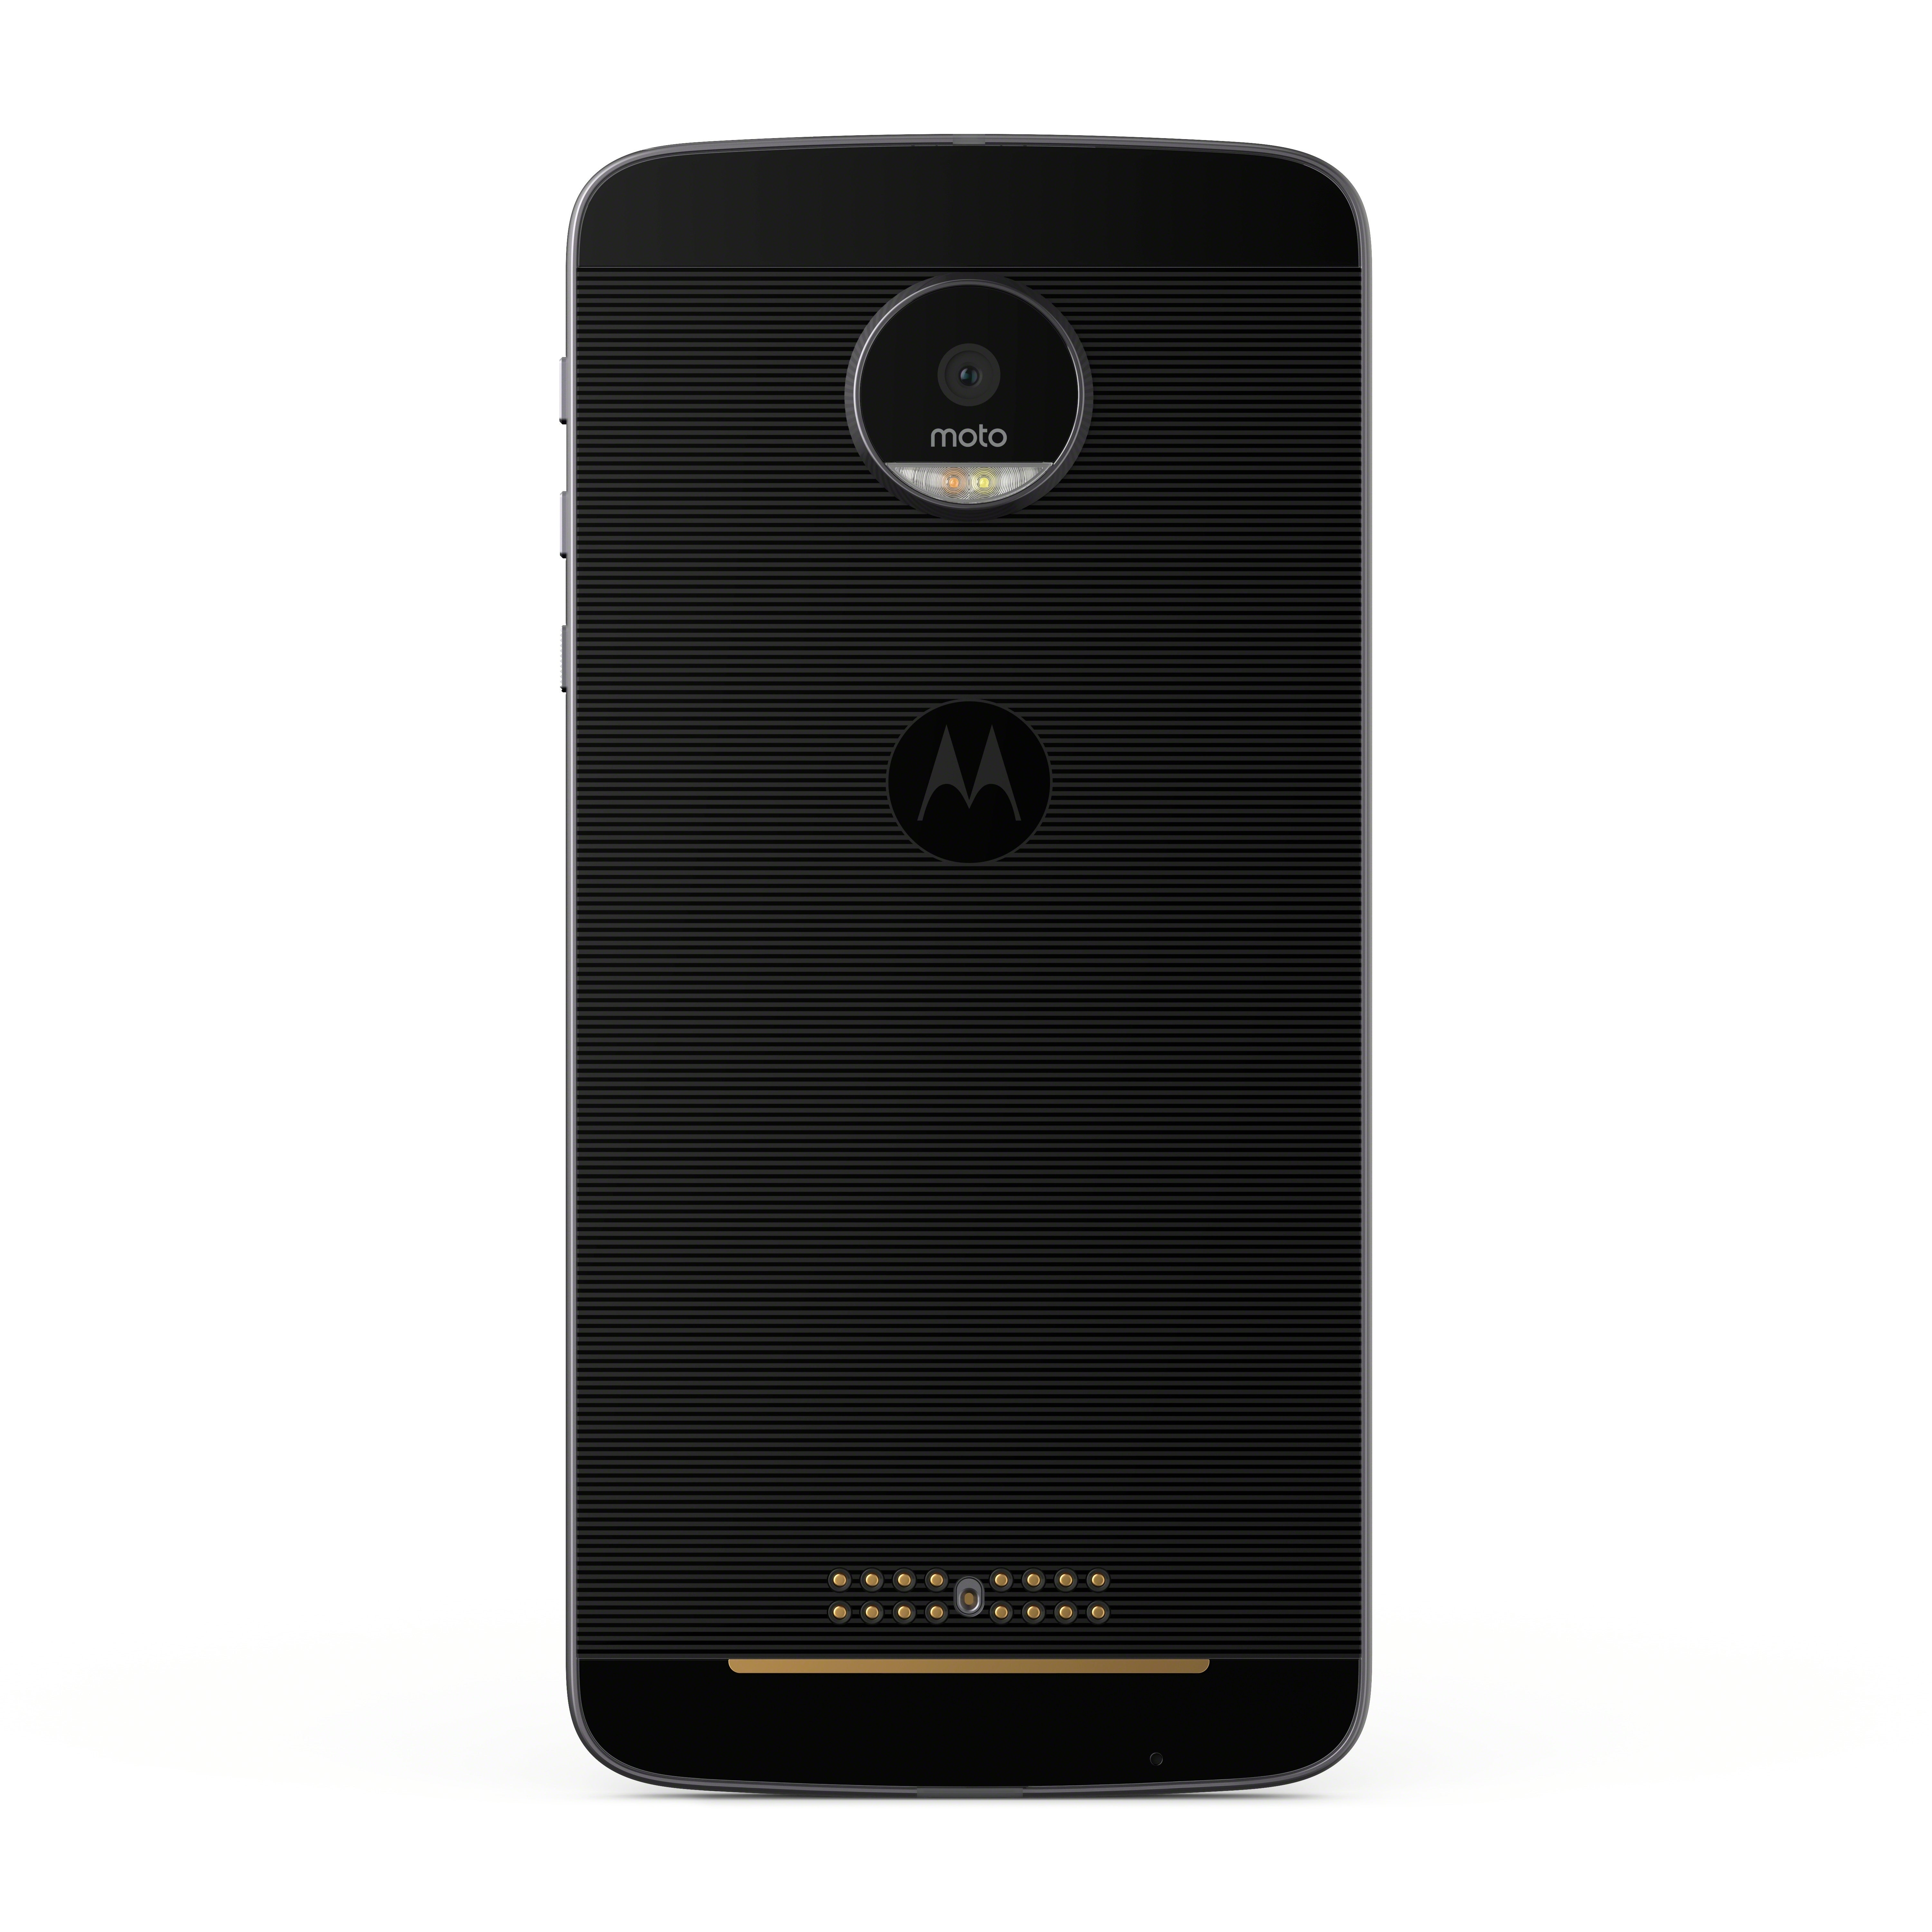 Moto Mod snap-on modules turn the Moto Z into a convertible